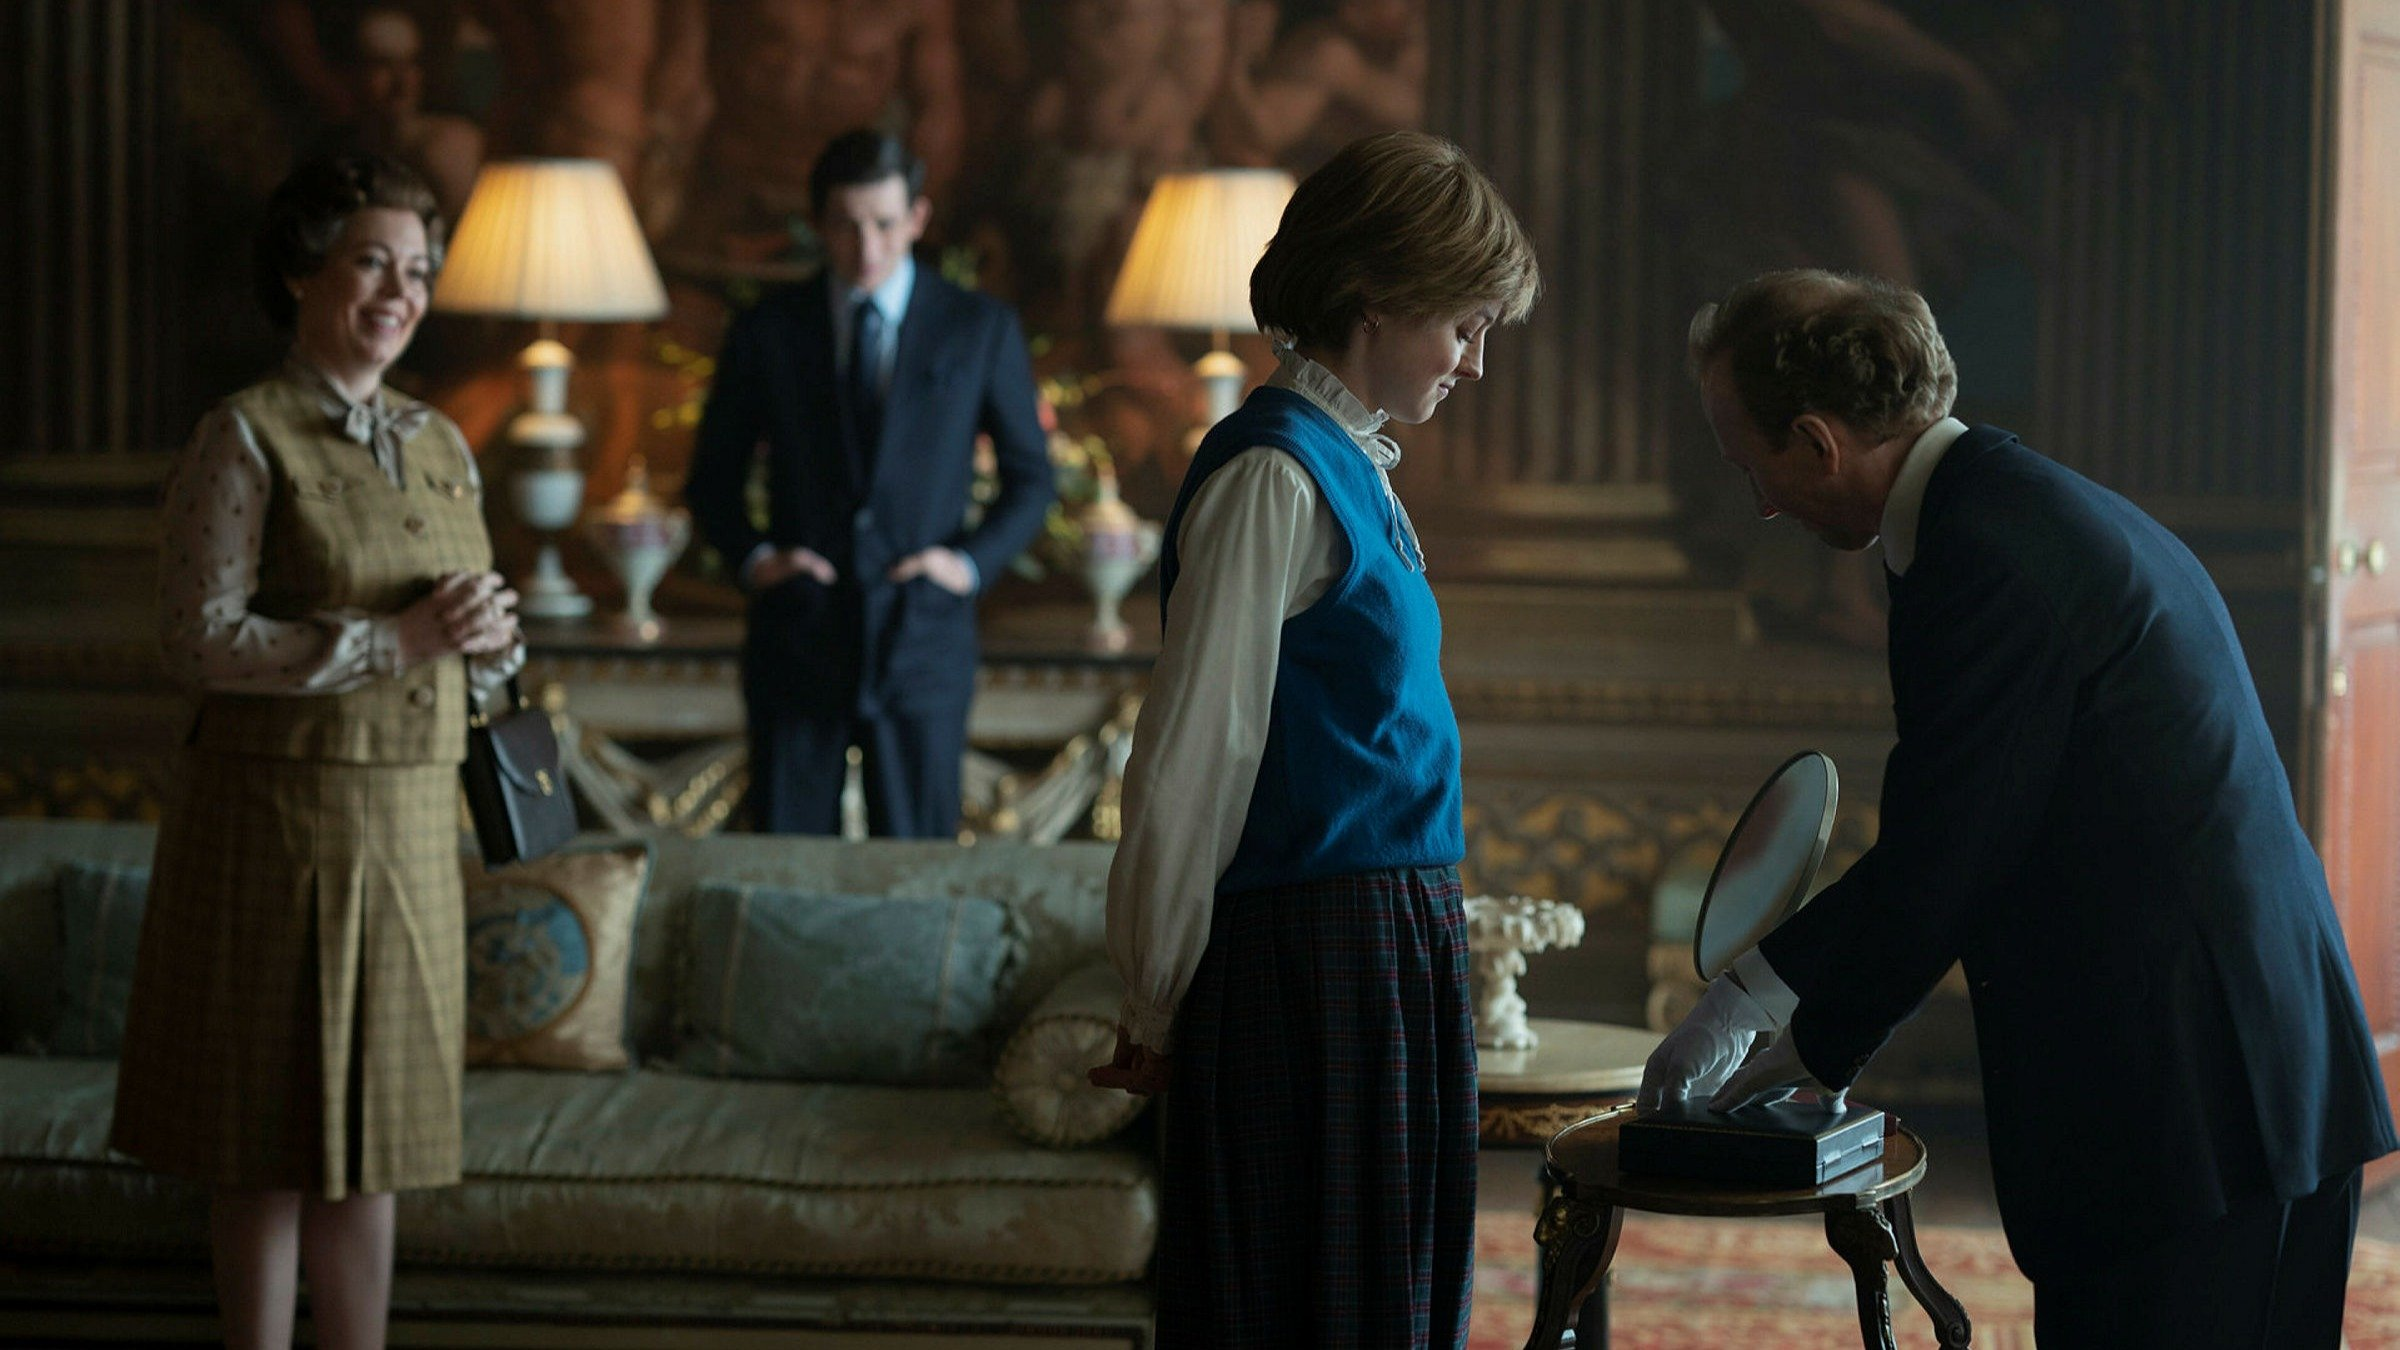 The Crown Season 4: Release Date & Everything You Need to Know About It